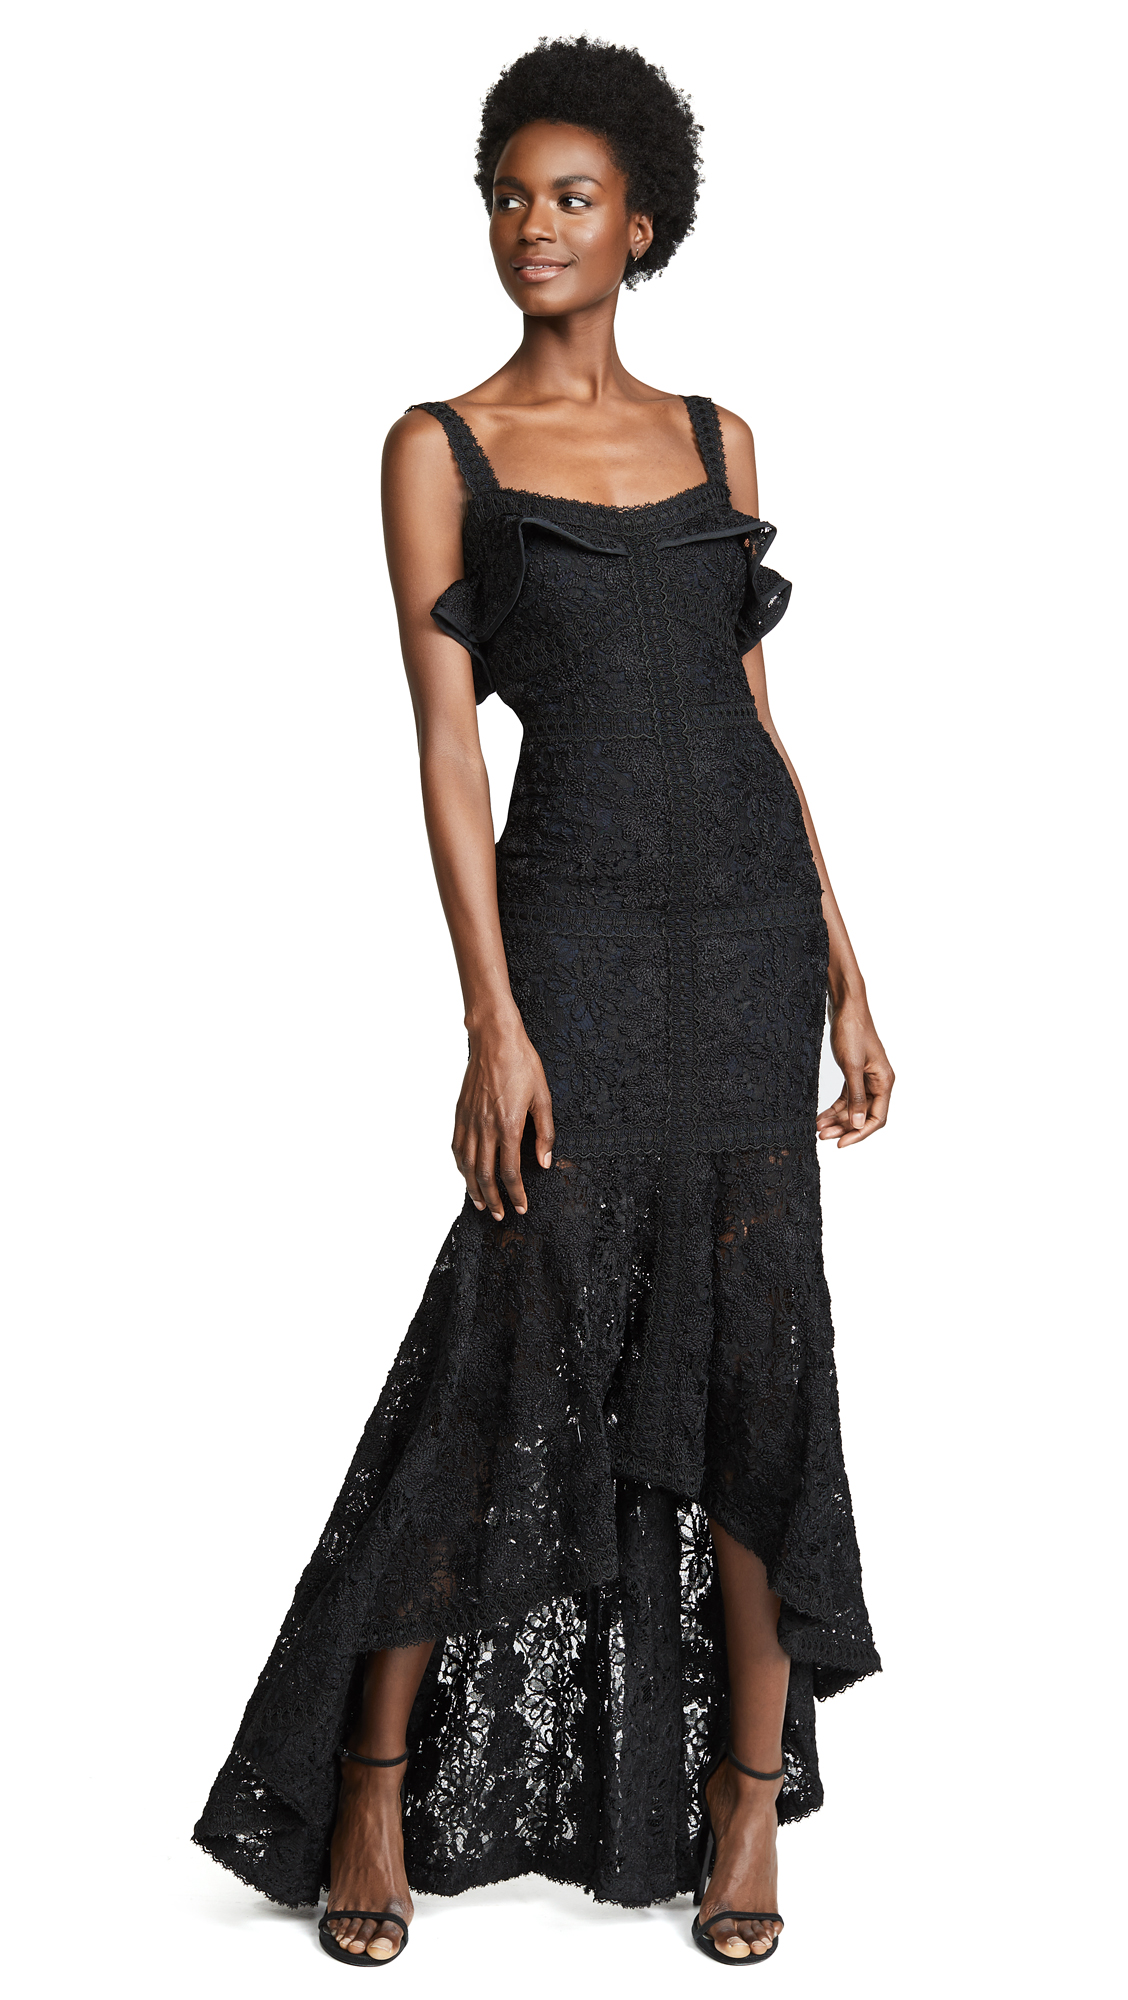 Alexis Vincenzo Gown - Black Lace